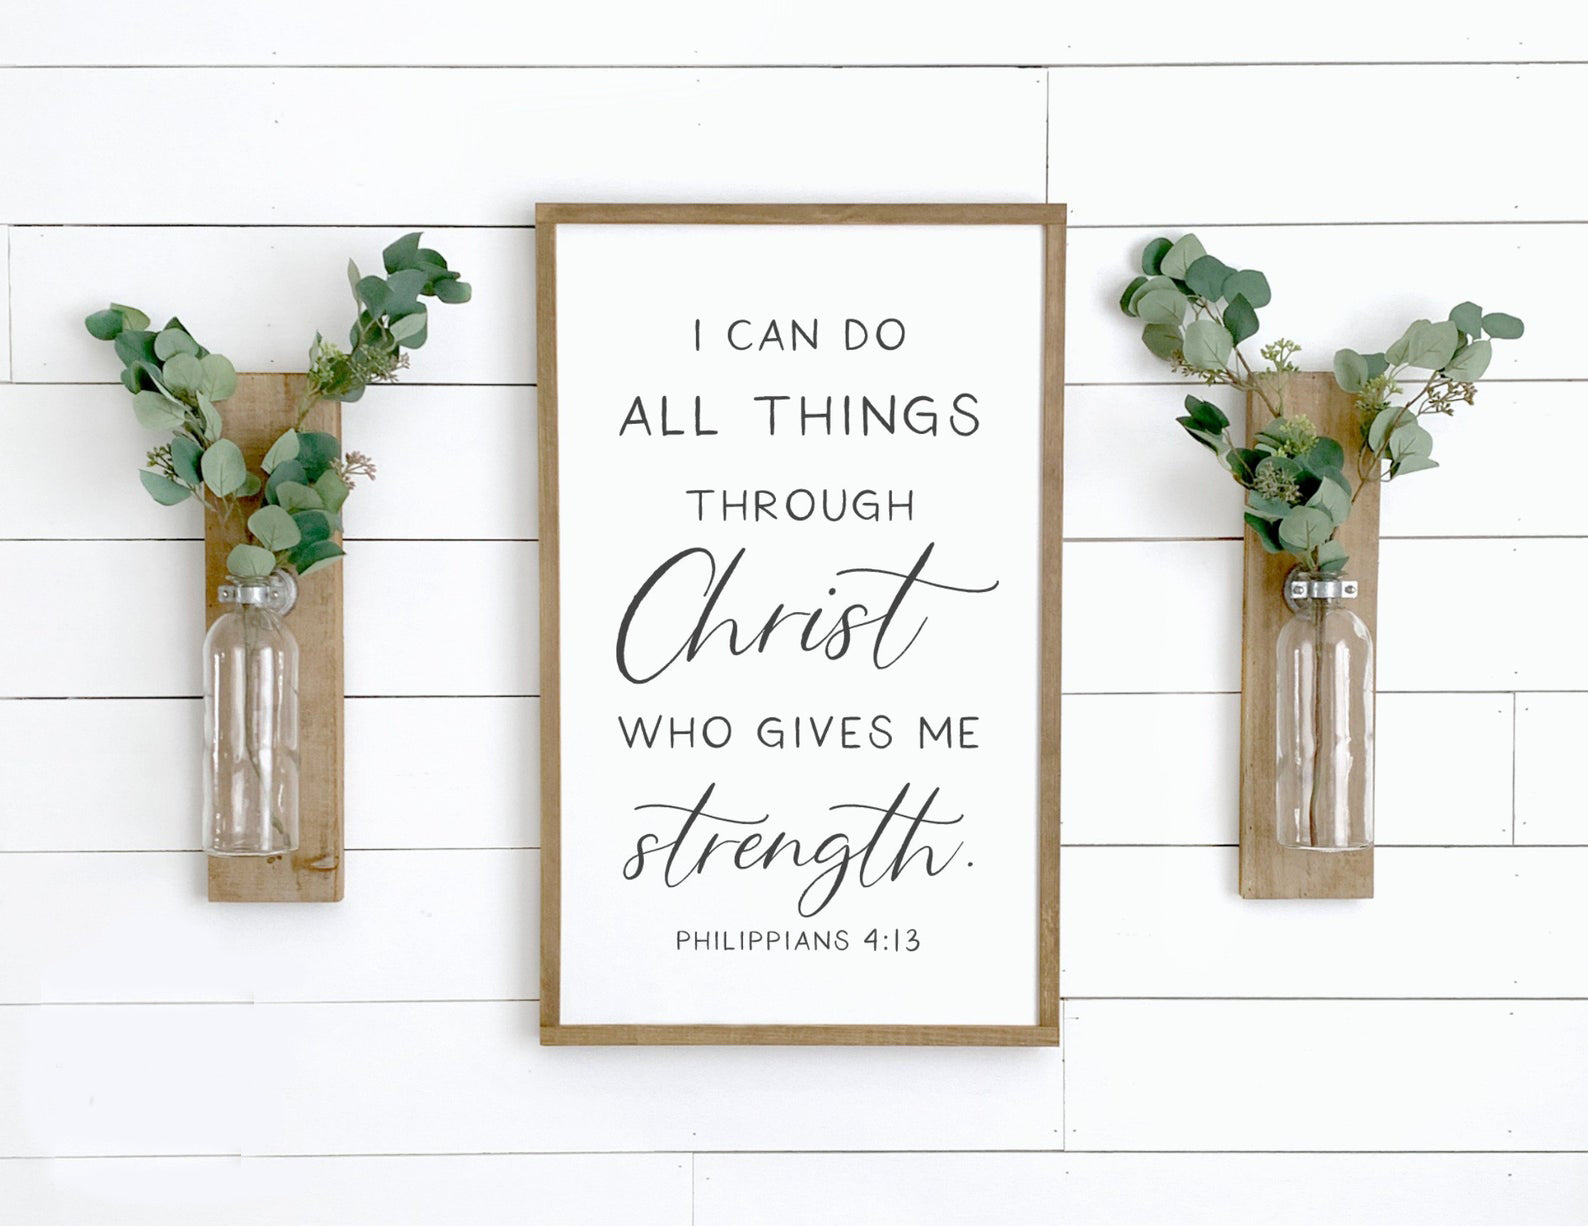 I Can Do All Things Through Christ Philippians 4:13 Framed Wood Sign Farmhouse Style